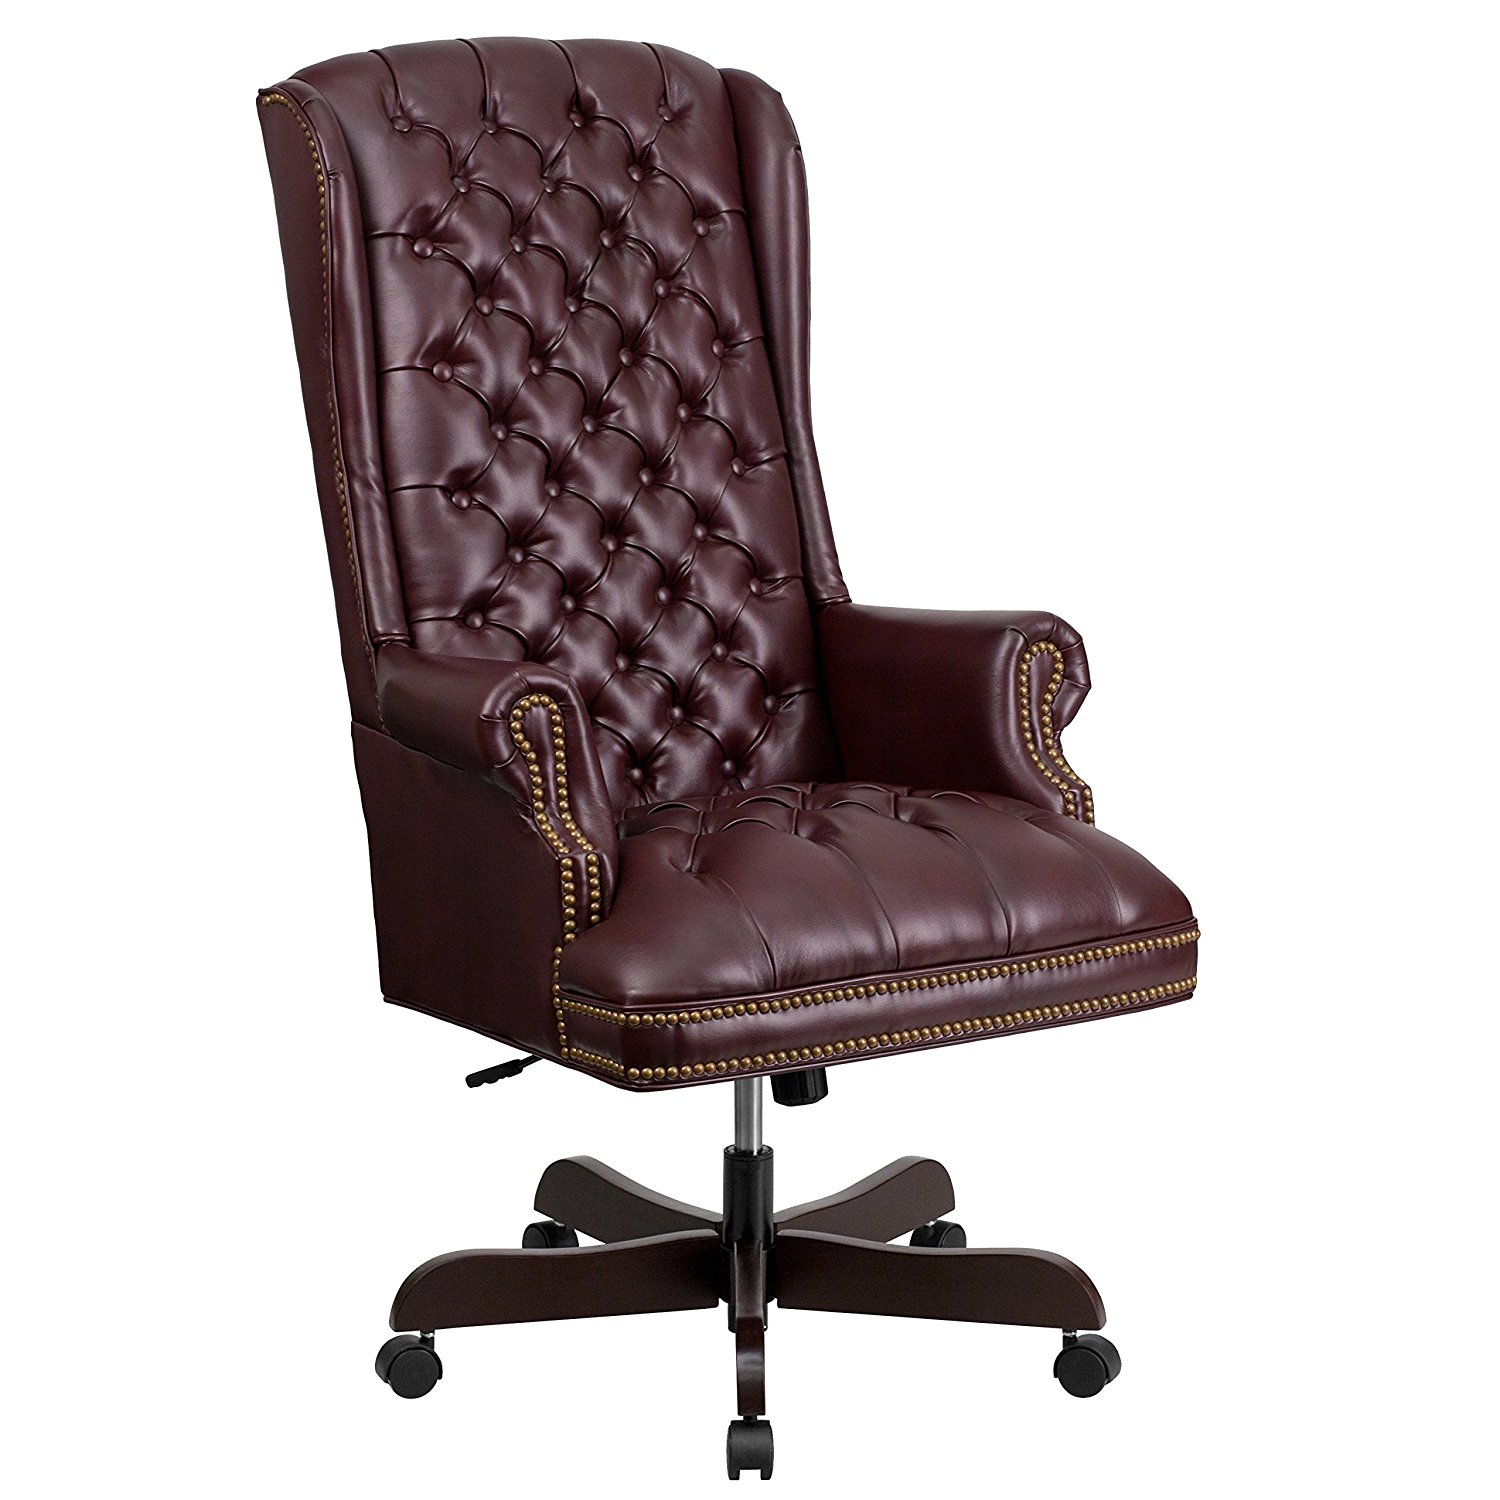 Sensational Details About Flash Furniture High Back Tufted Leather Executive Chair In Burgundy Finish New Machost Co Dining Chair Design Ideas Machostcouk